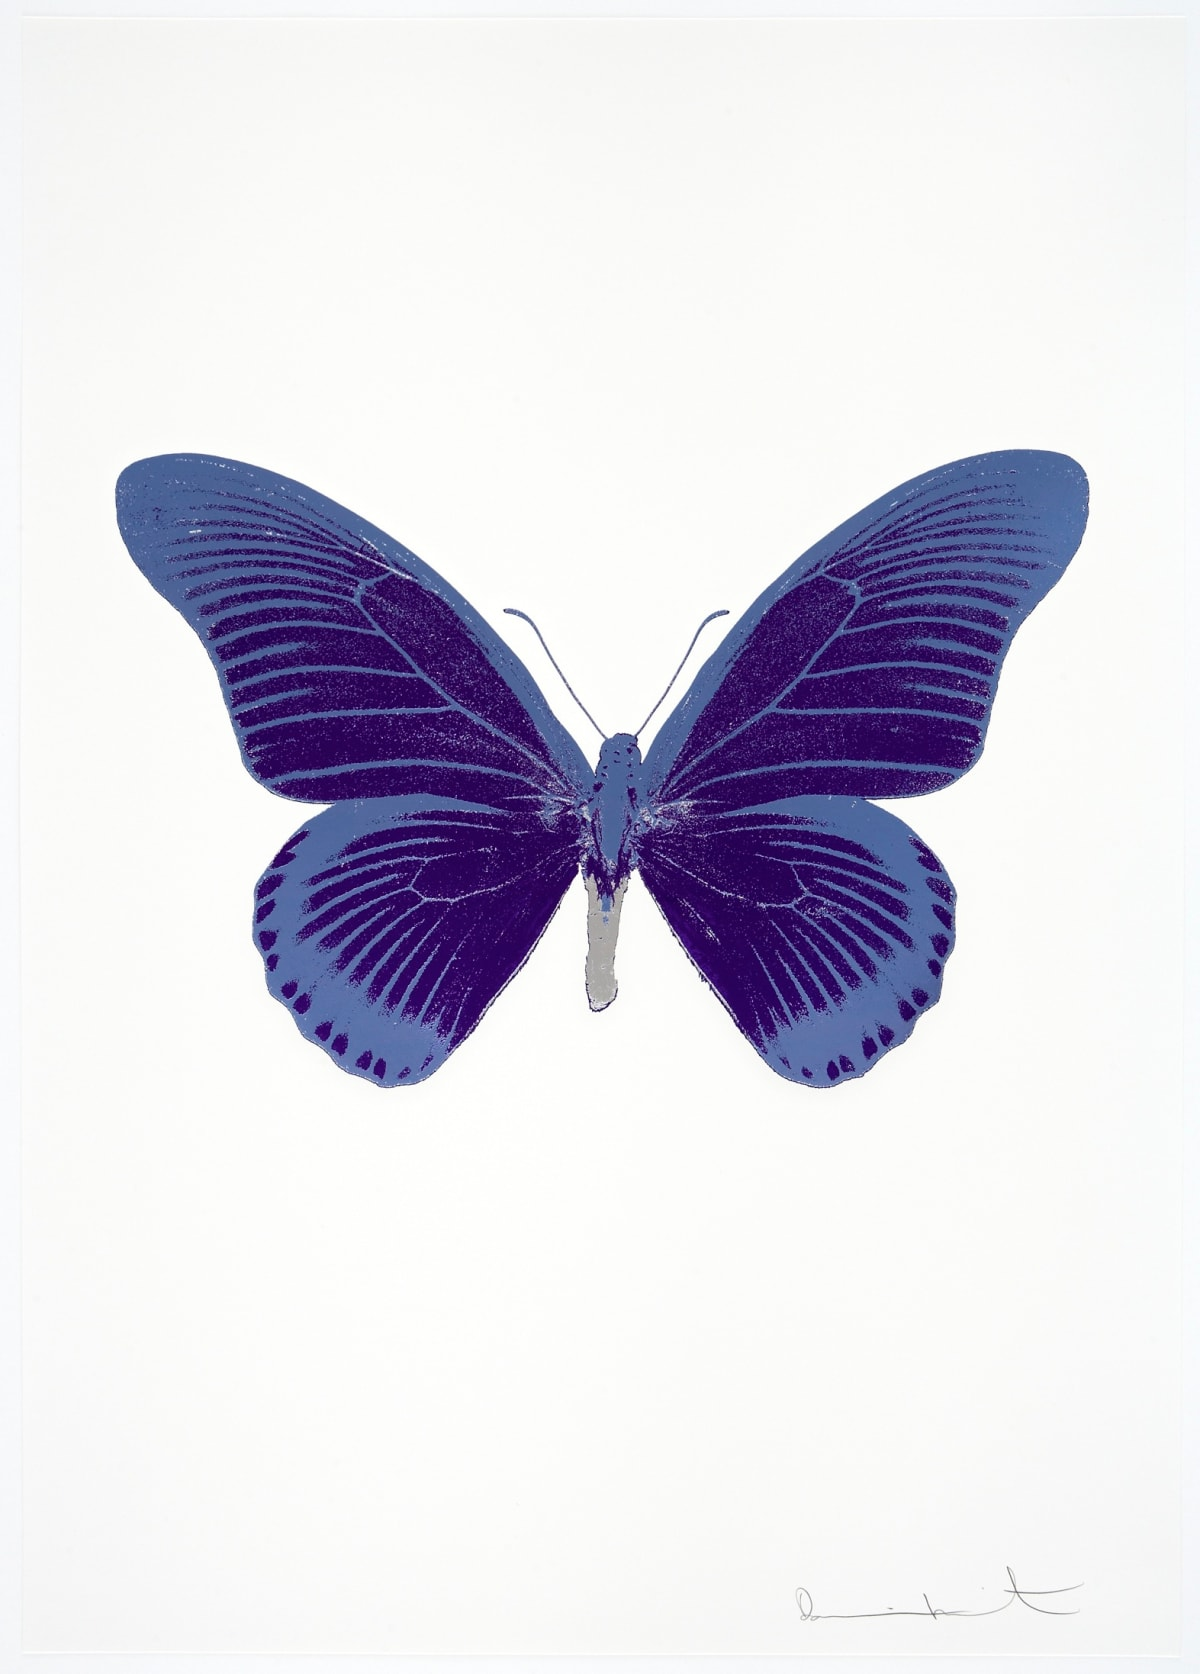 Damien Hirst The Souls IV - Imperial Purple/Cornflower Blue/Silver Gloss Damien Hirst butterfly foil print for sale Damien Hirst print for sale , 2010 3 colour foil block on 300gsm Arches 88 archival paper. Signed and numbered. Published by Paul Stolper and Other Criteria 72 x 51cm OC8040 / 1418-63 Edition of 15